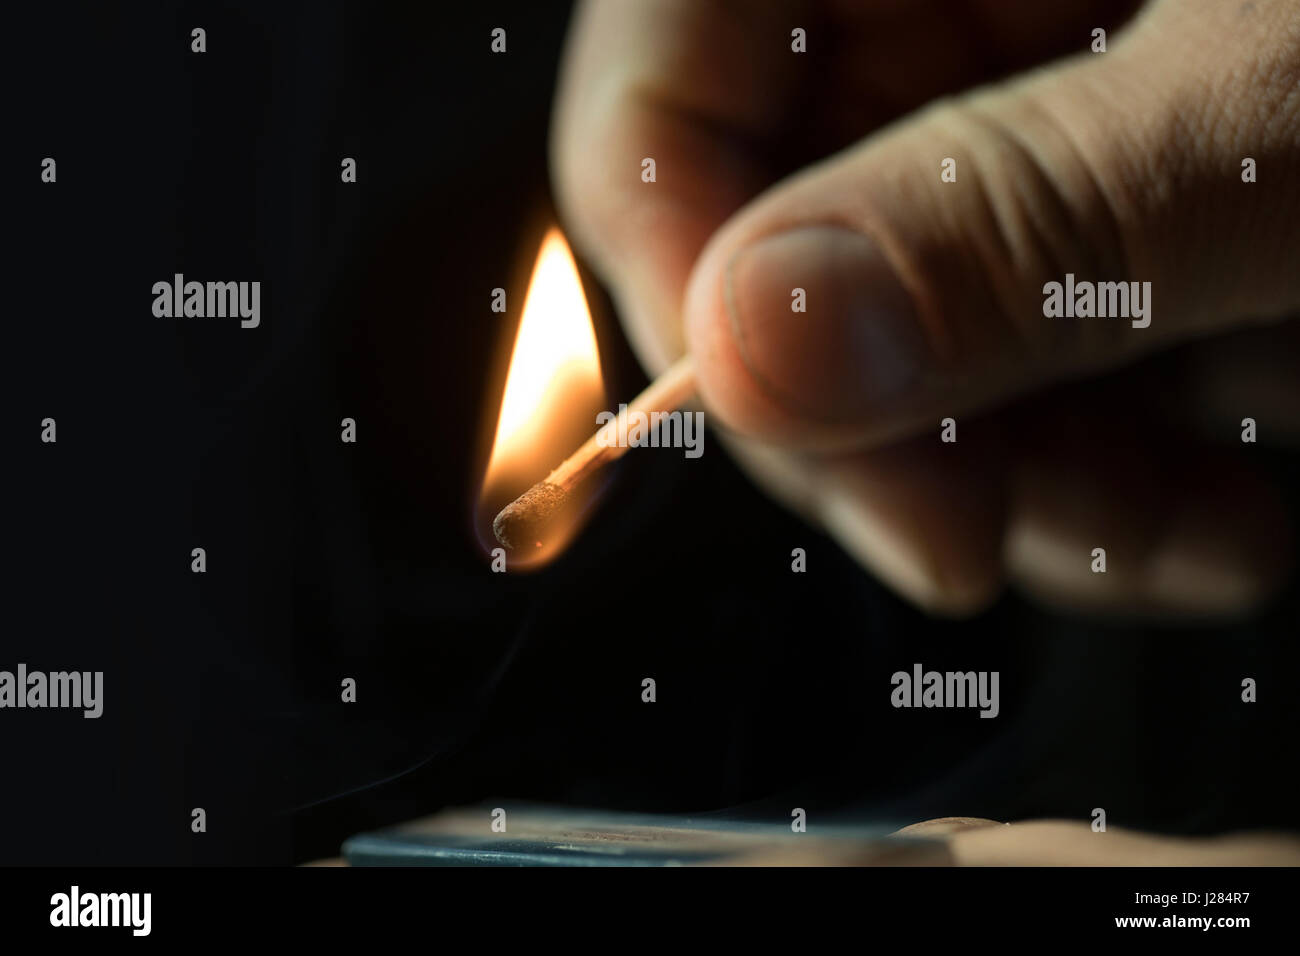 Cropped hand holding burning matchstick in darkroom - Stock Image